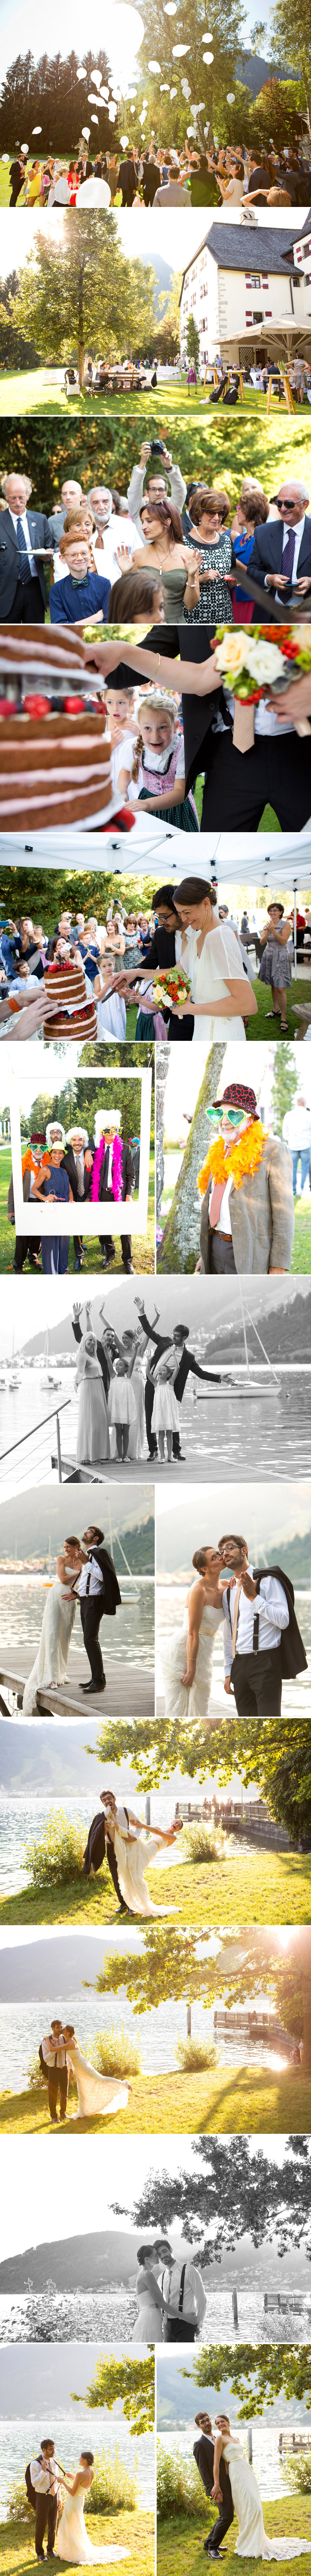 Wedding Photographer Zell am See. Destination Wedding Zell am See. © Michele Agostinis